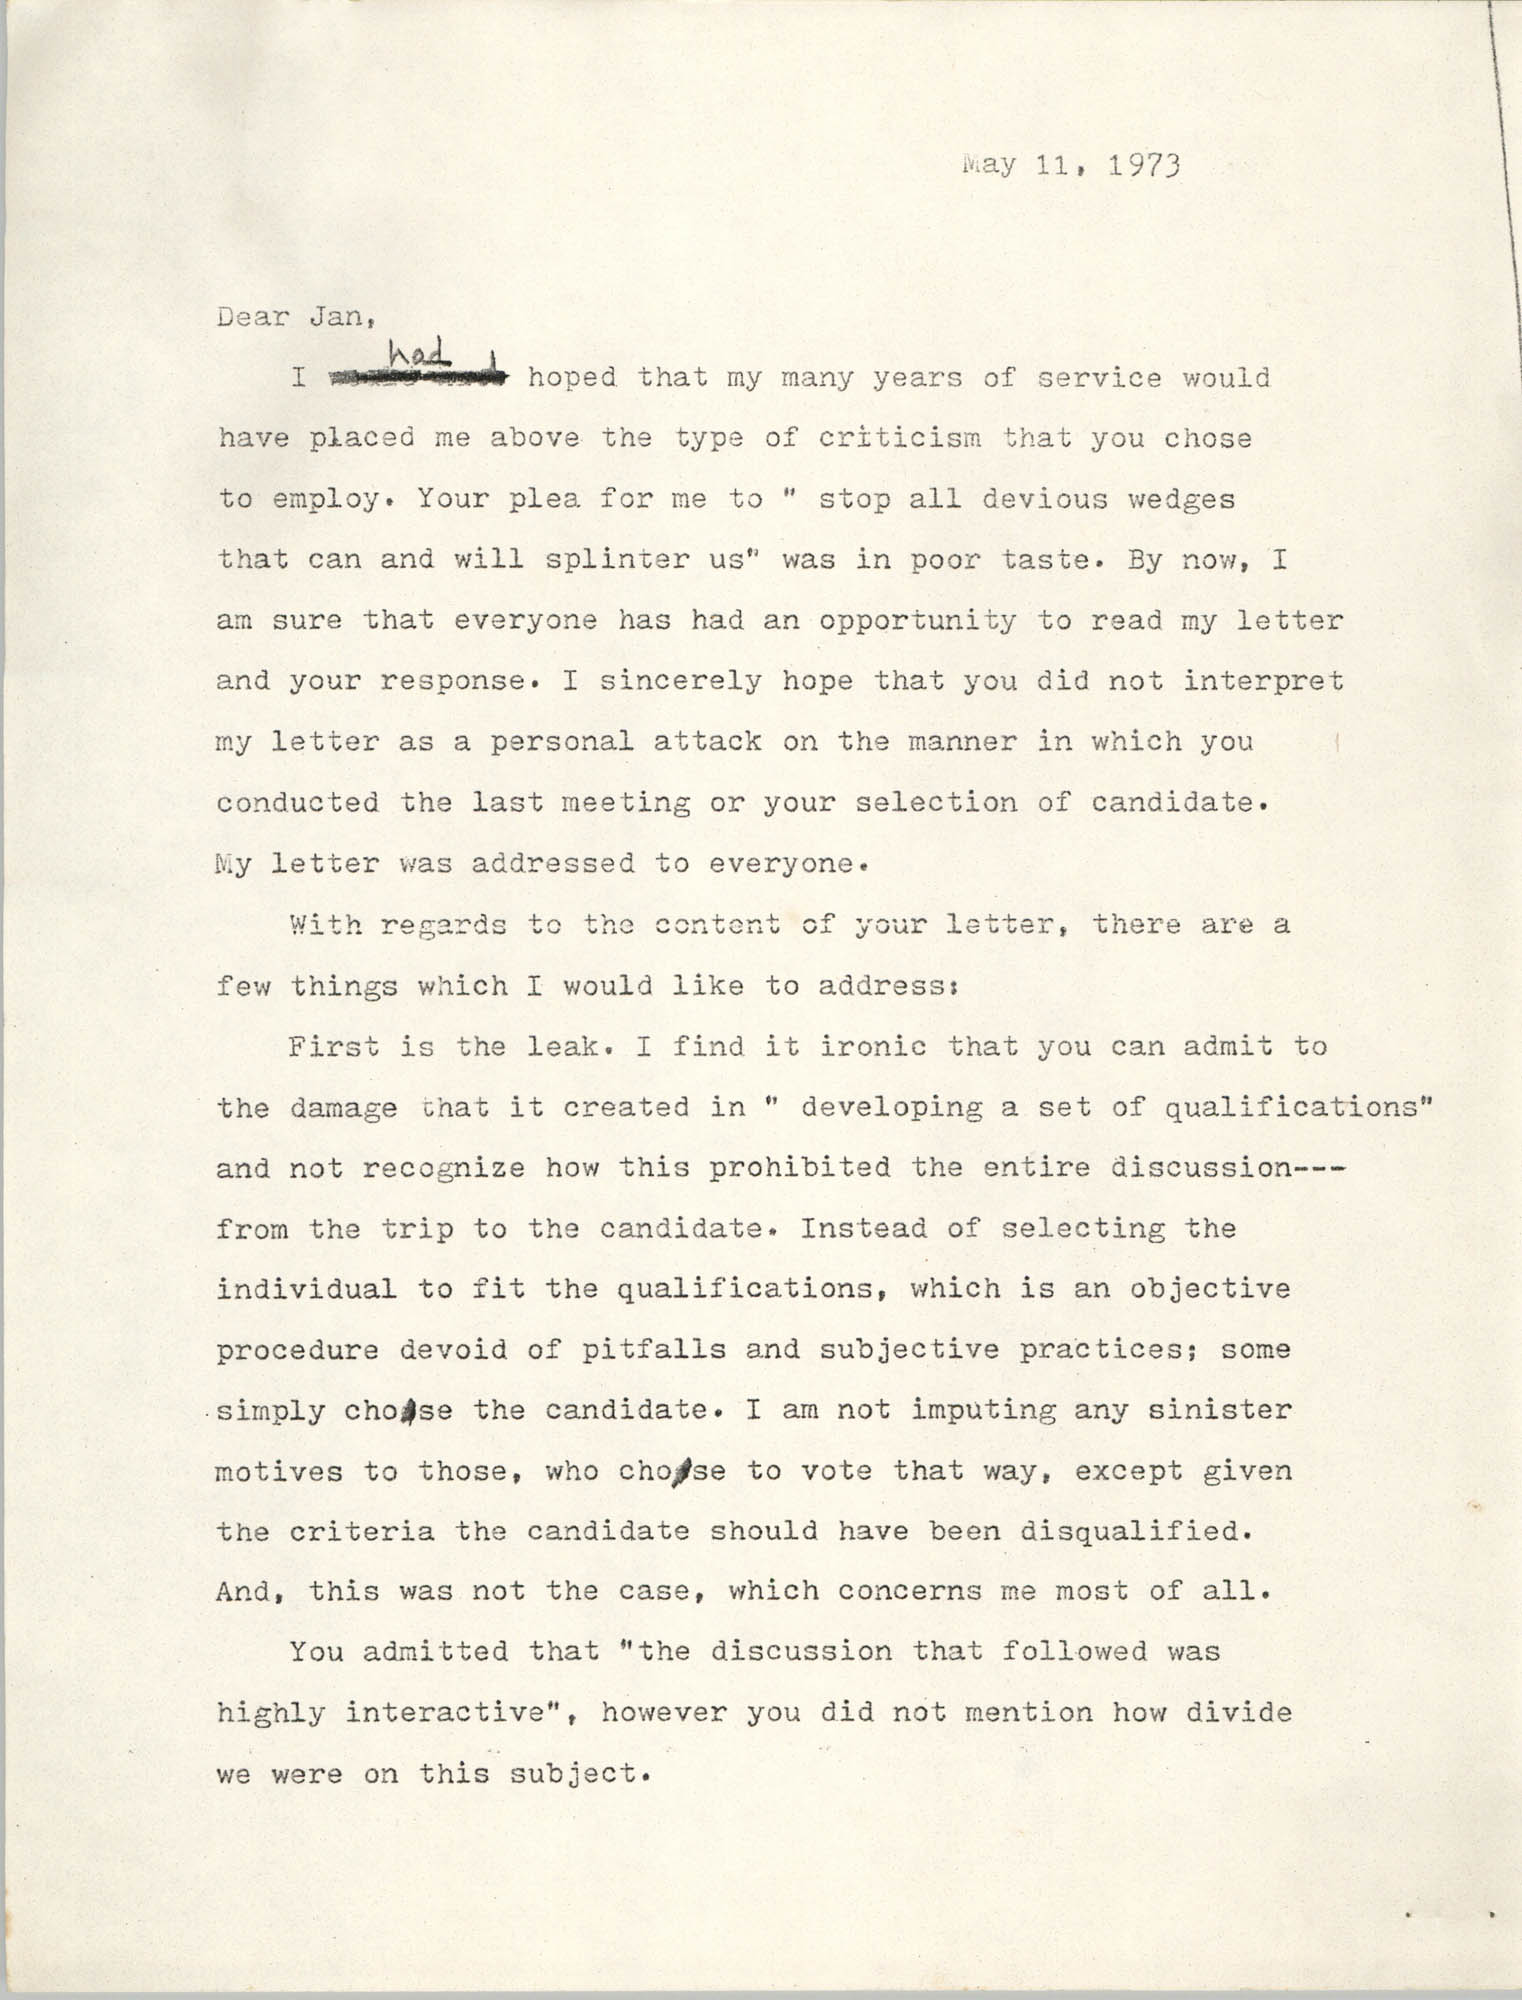 Letter from M'Zilikazi to Jan Bailey, May 11, 1973